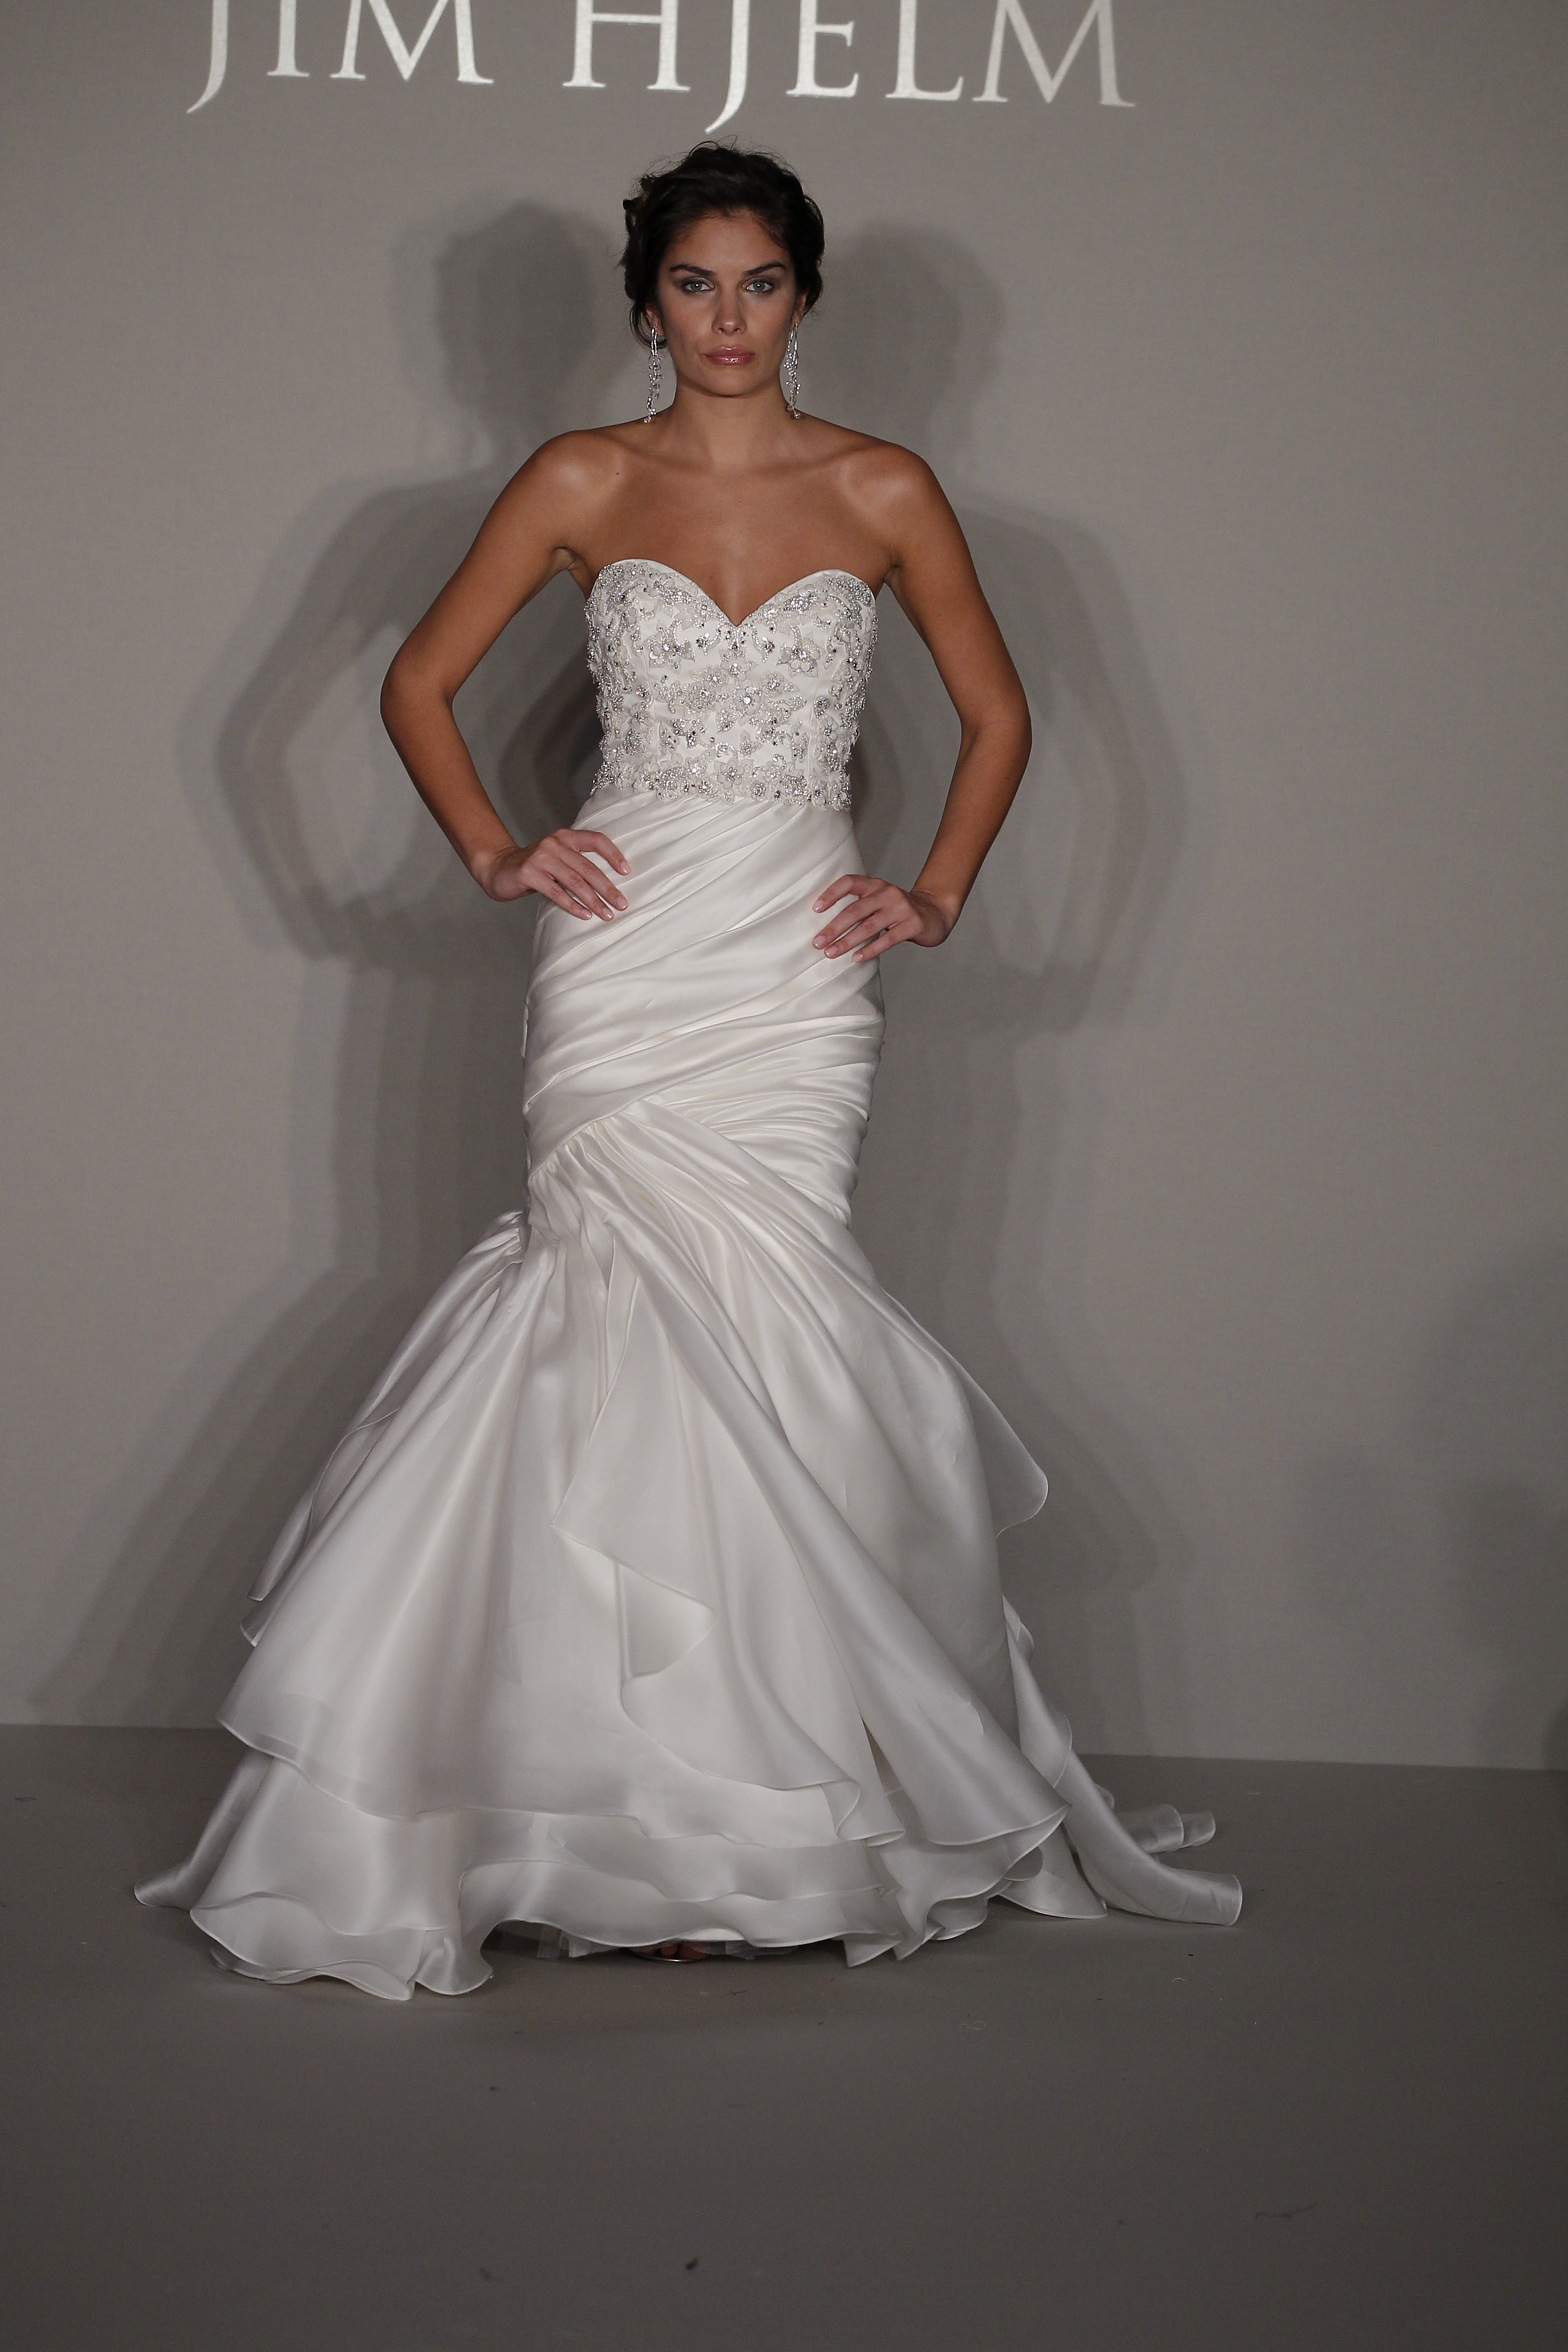 Jim hjelm bridal dresses prices flower girl dresses for Vera wang wedding dresses prices list